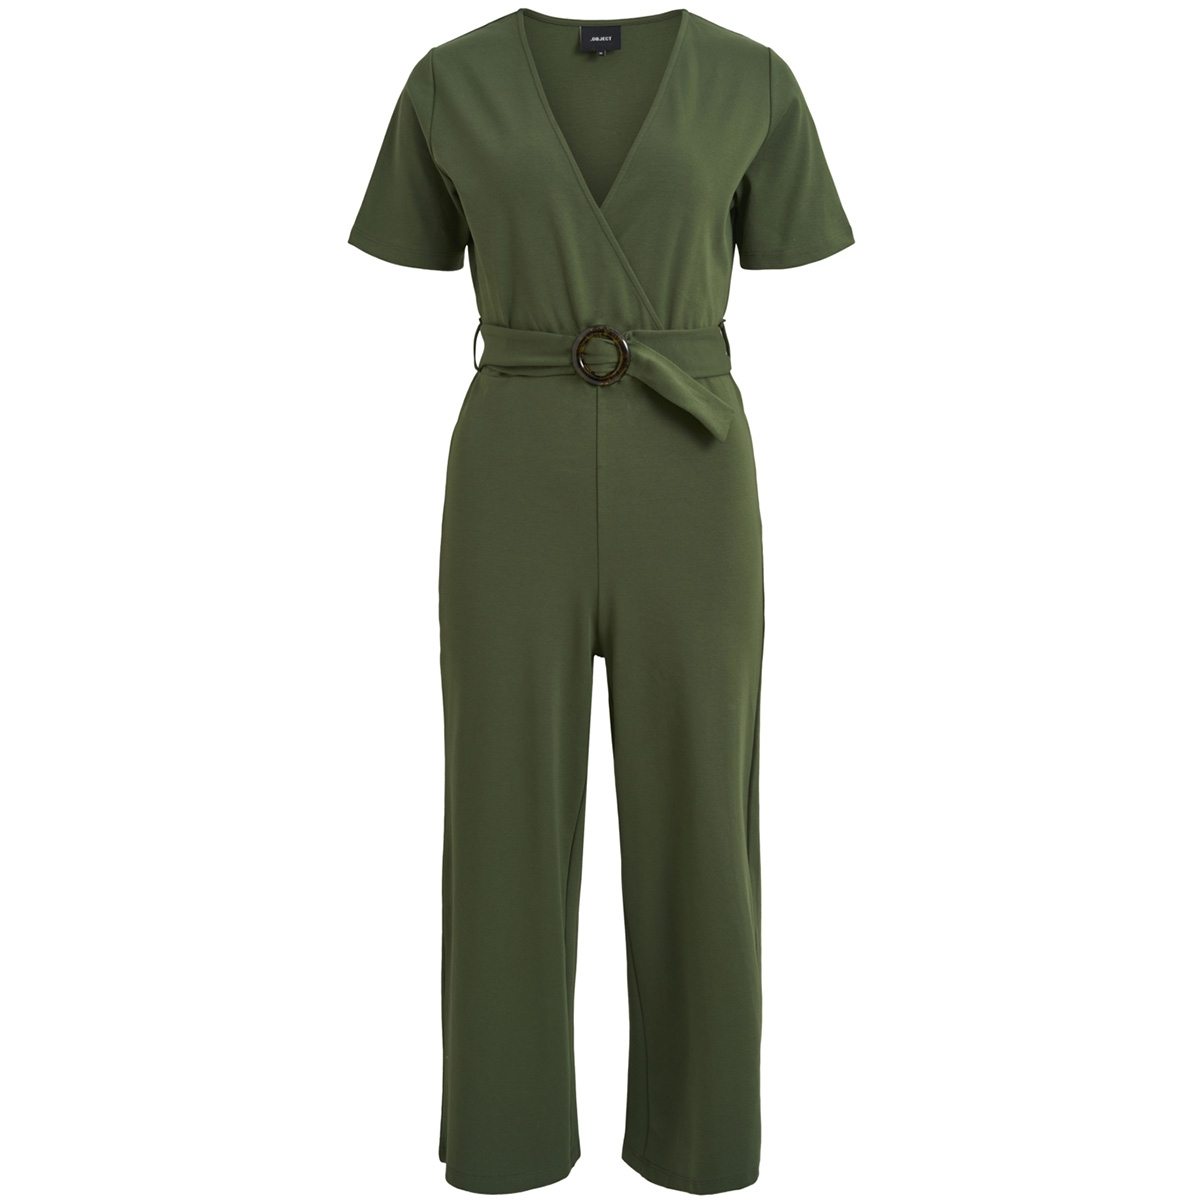 objfolke s/s jumpsuit a sp 23030663 object jumpsuit black forest